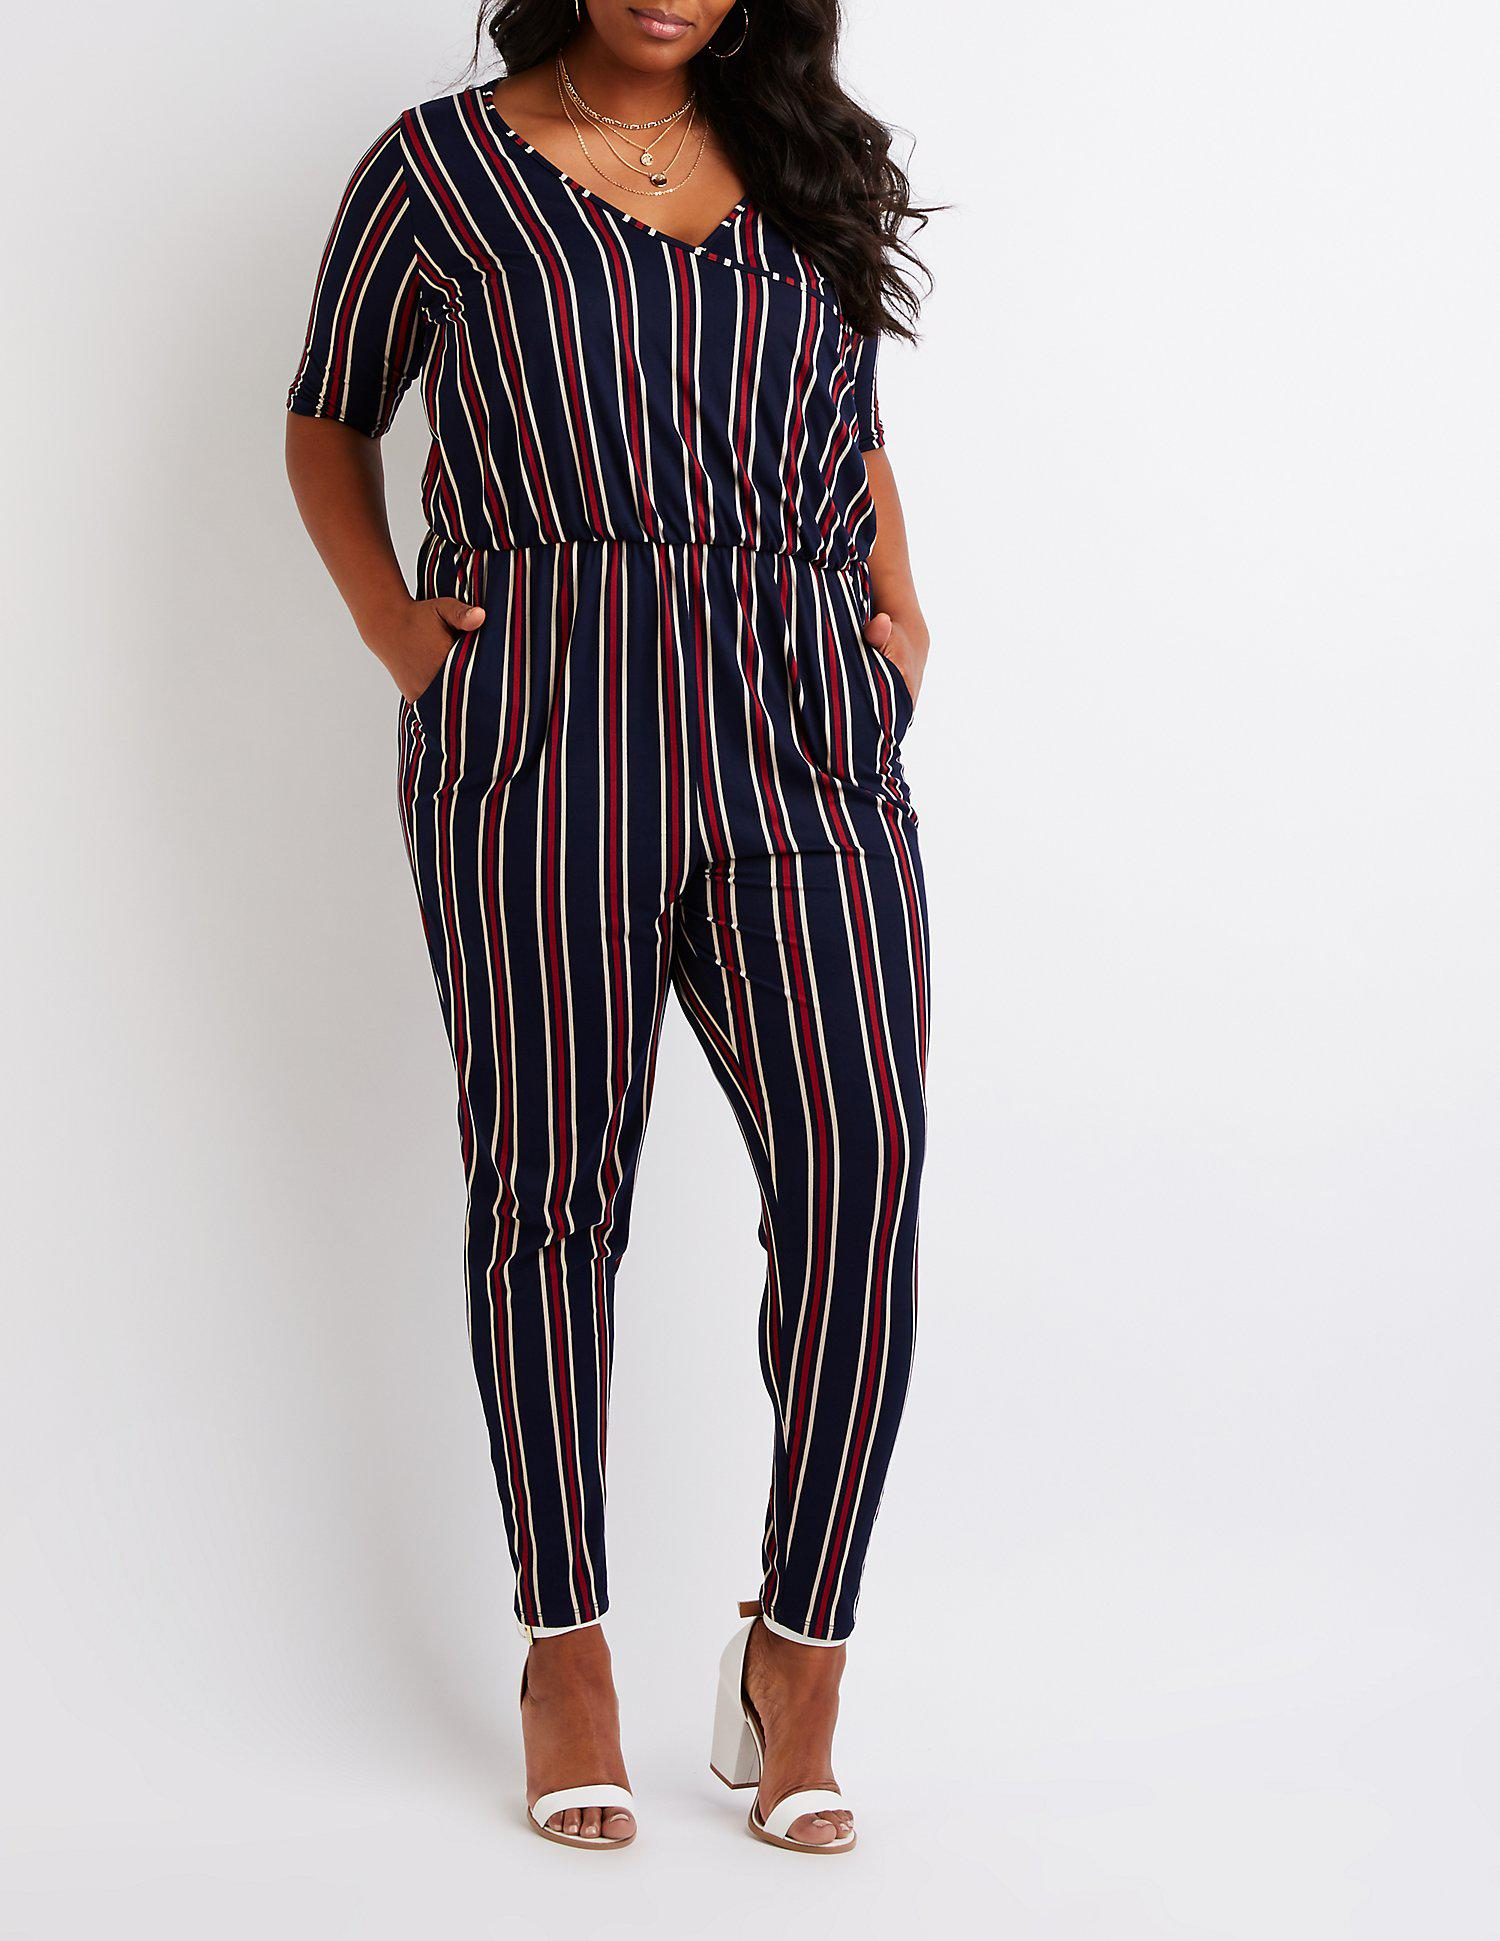 77c5a099442 Lyst - Charlotte Russe Plus Size Striped Wrap Jumpsuit in Blue